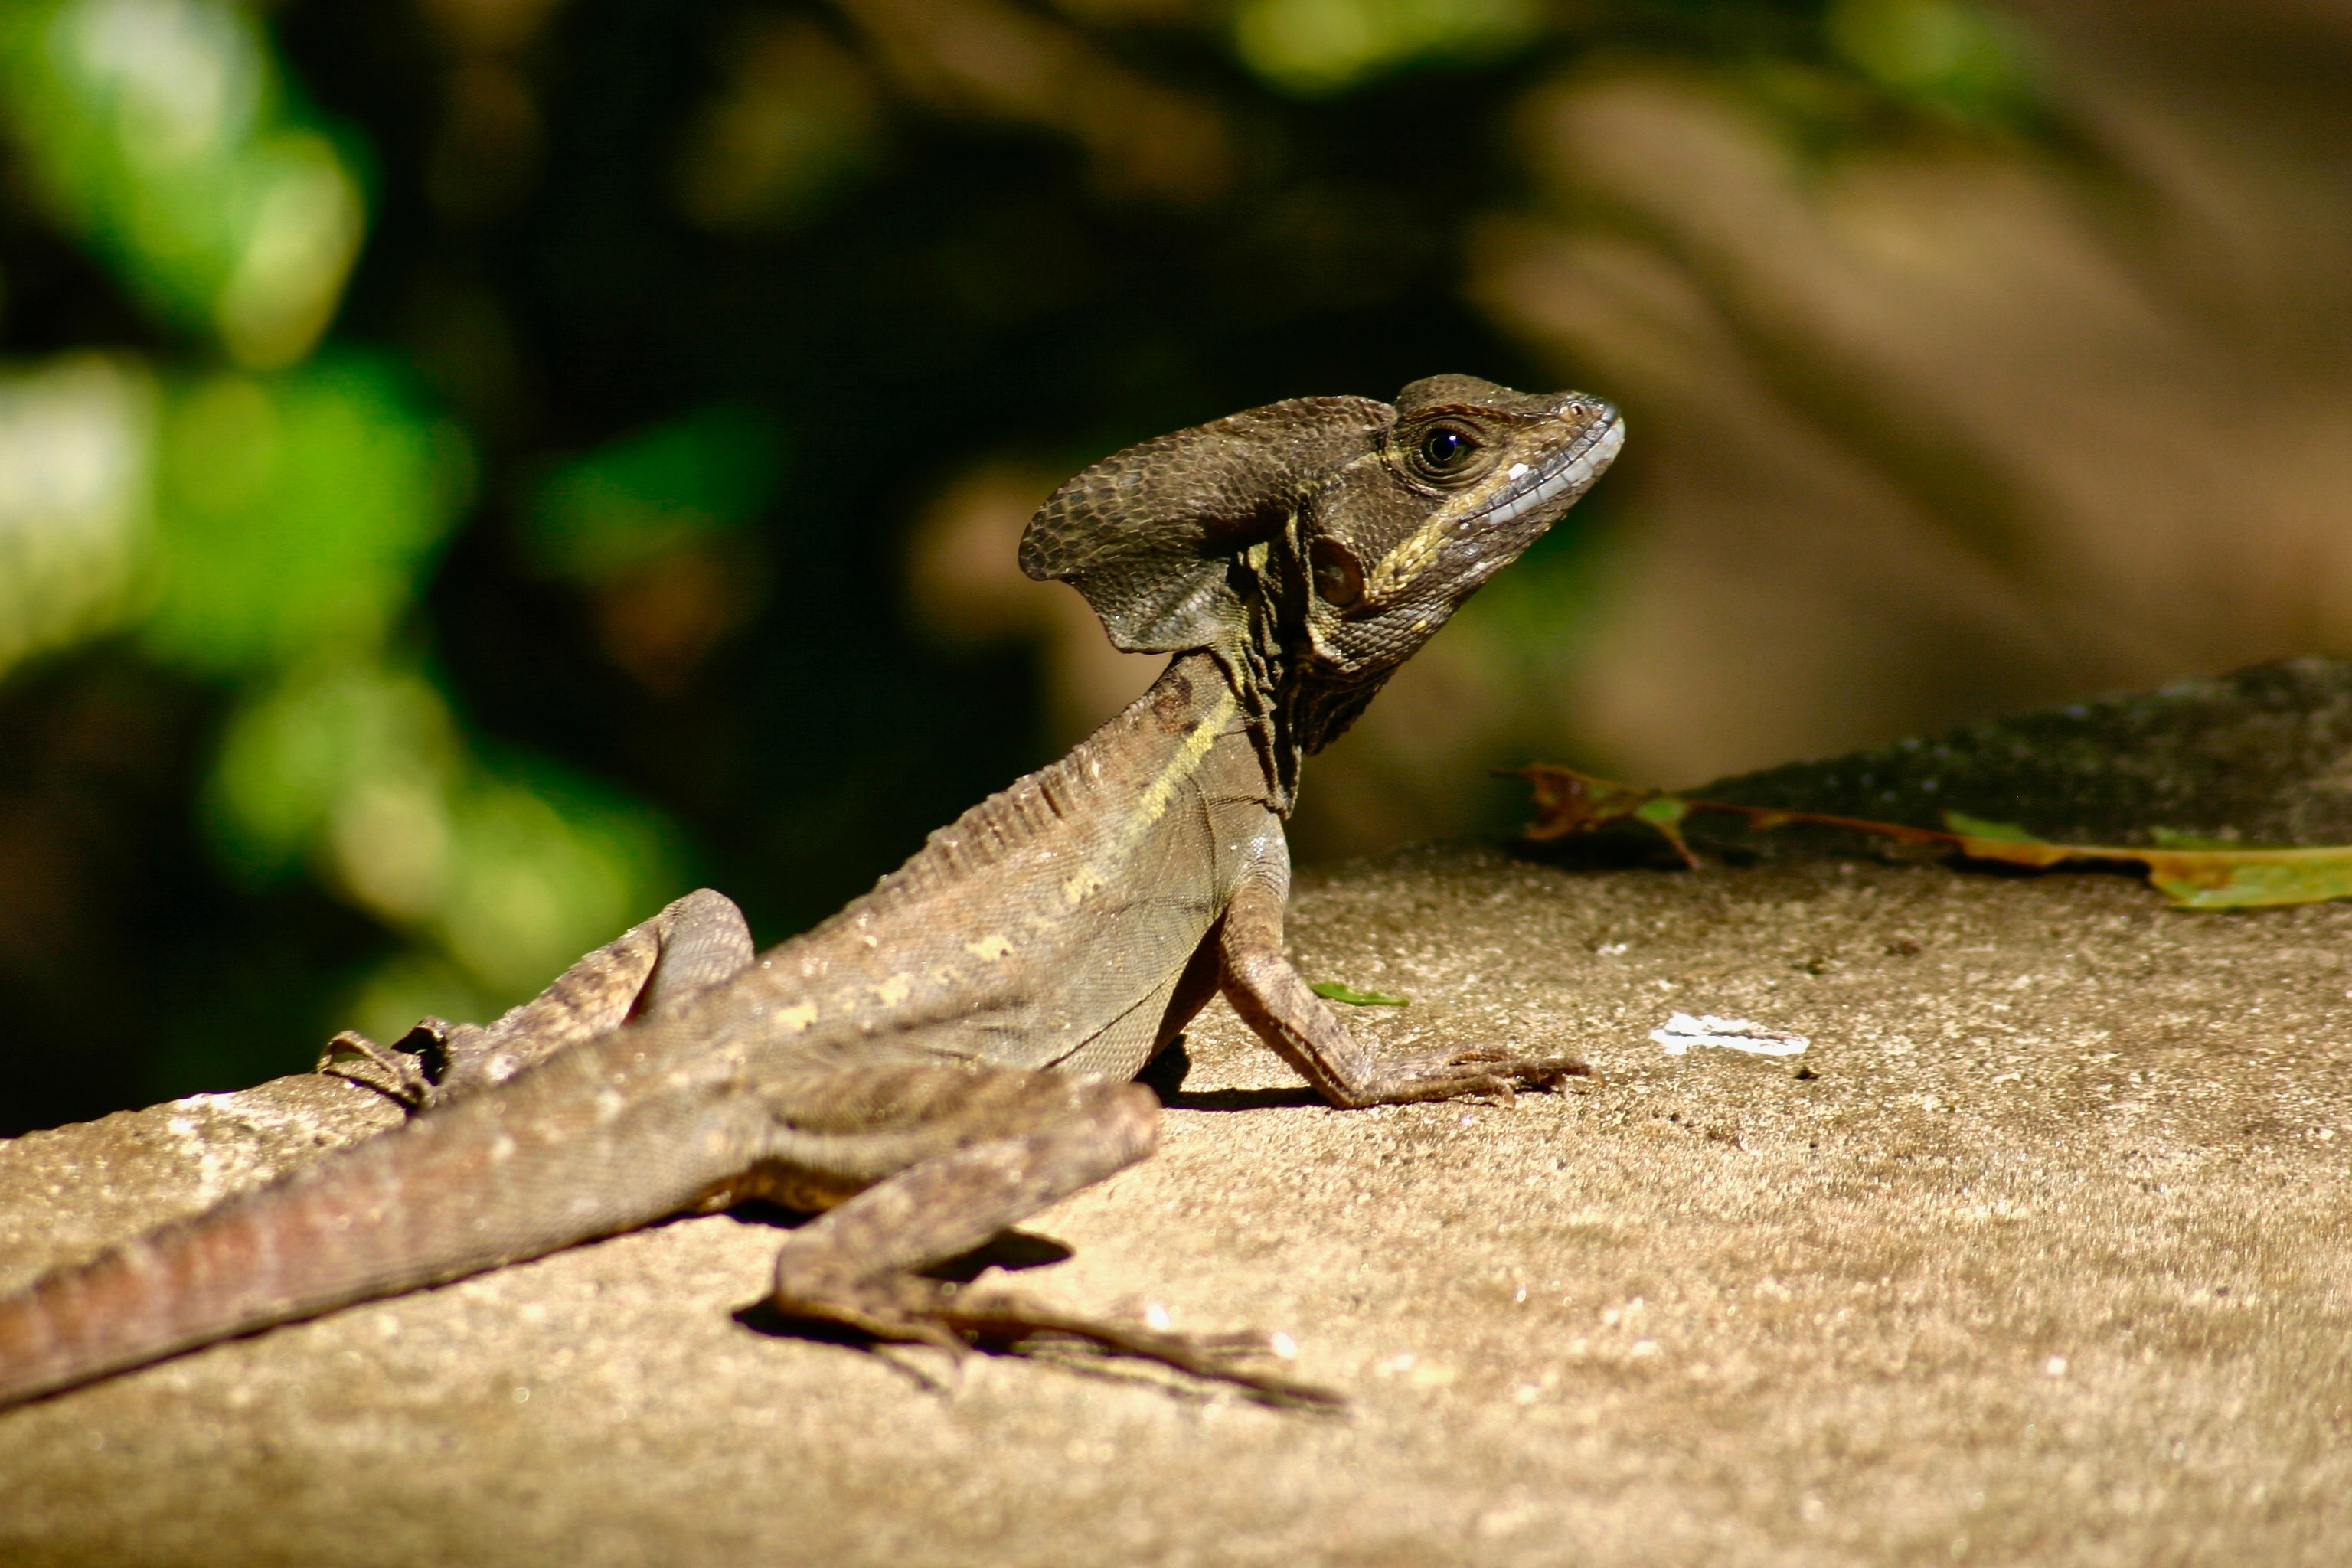 brown lizard on gray surface